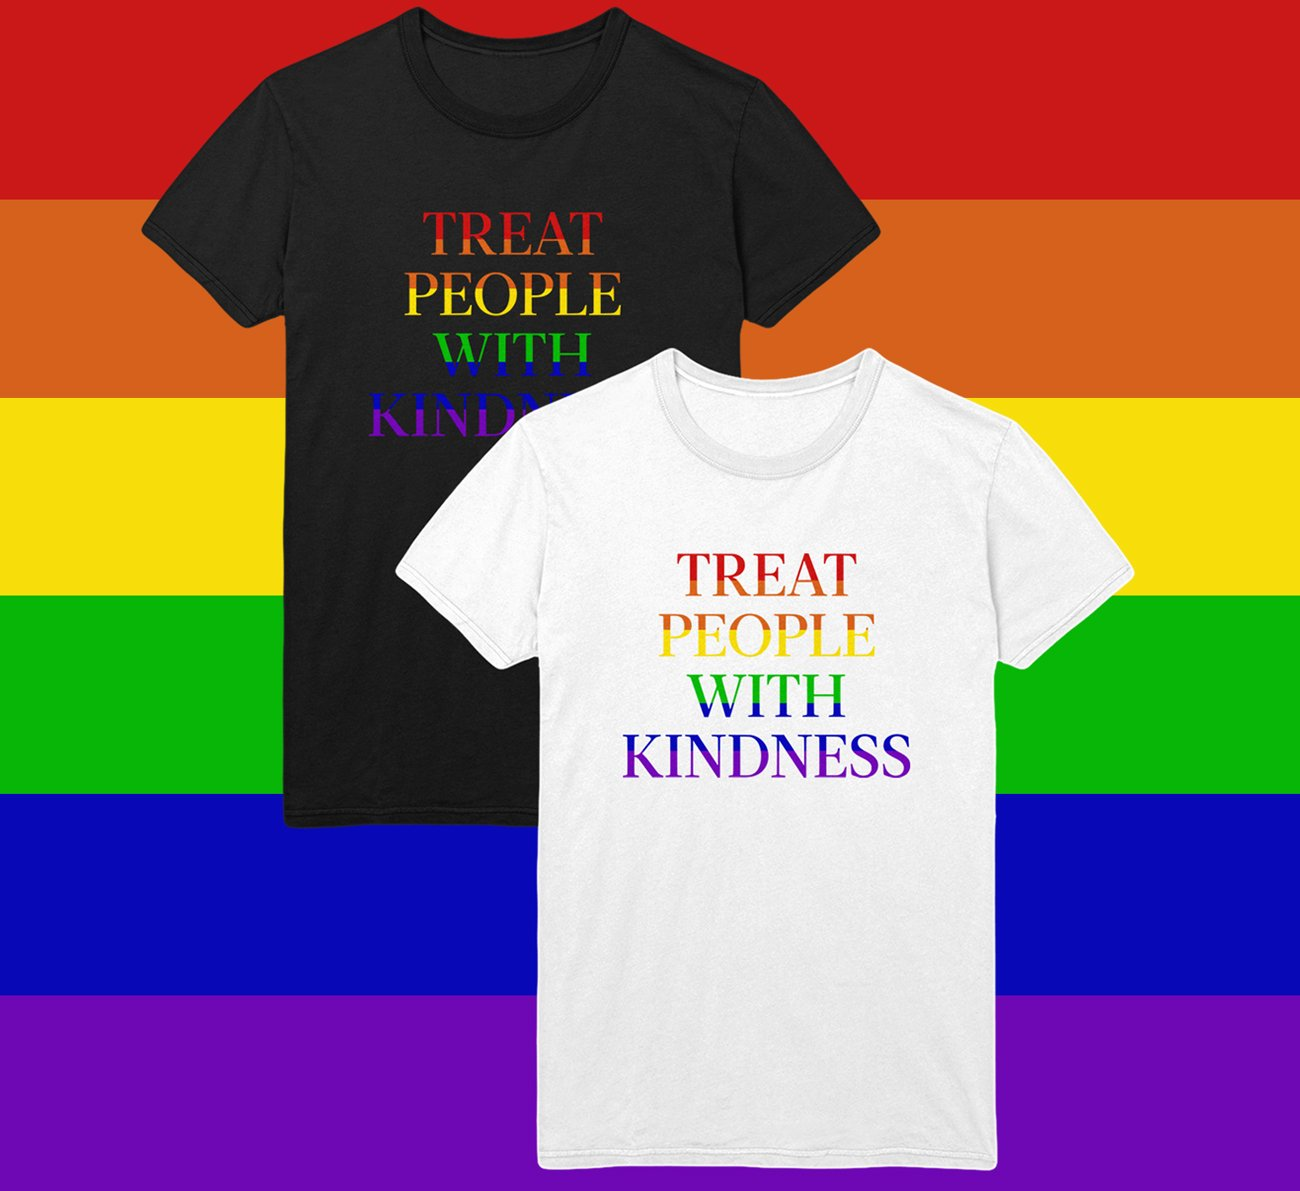 """HSHQ on Twitter: """"In celebration of Pride, two special Treat People With  Kindness T-Shirts have been added to the online store for the month of  June. All proceeds will go to support @"""